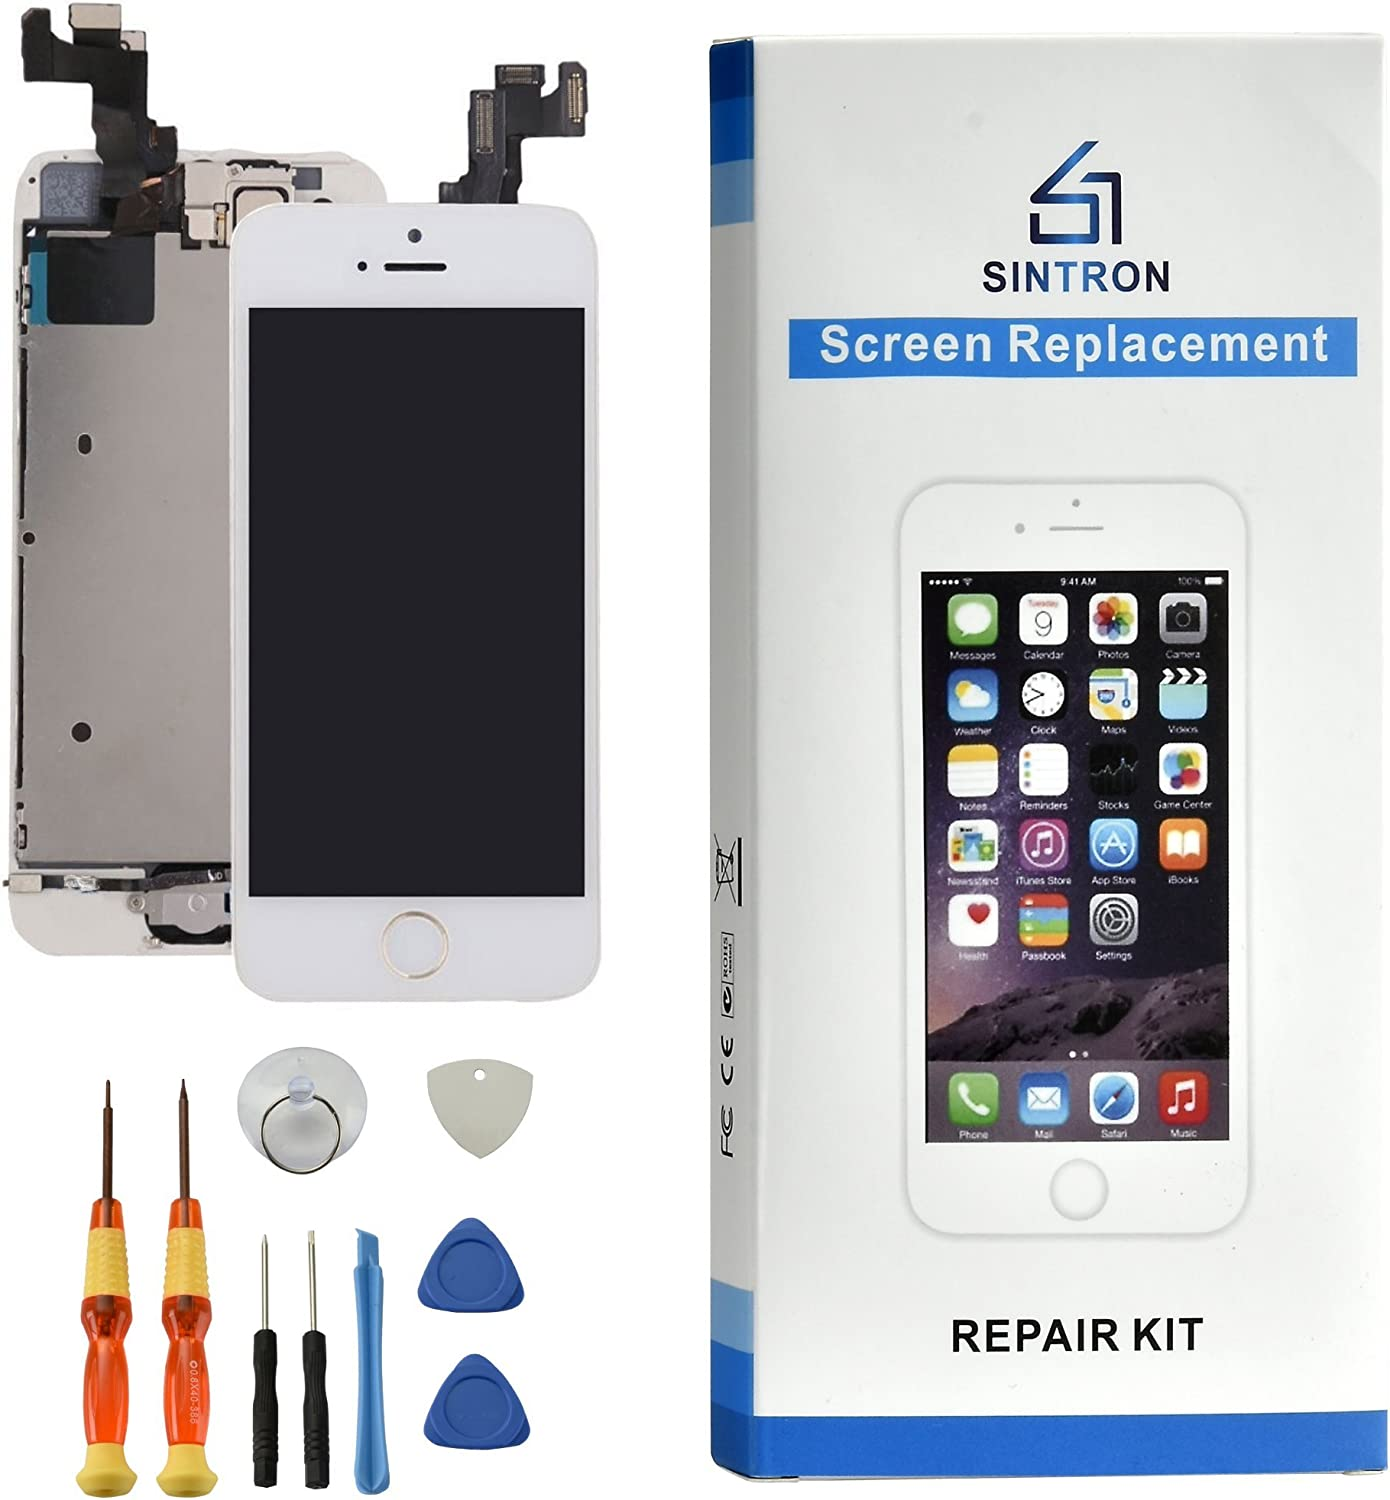 Sintron US Replacement for iPhone Se Fully Assembled-White - 5 oldmodel2 (Compatible with iPhone Se, Fully Assembled-White)